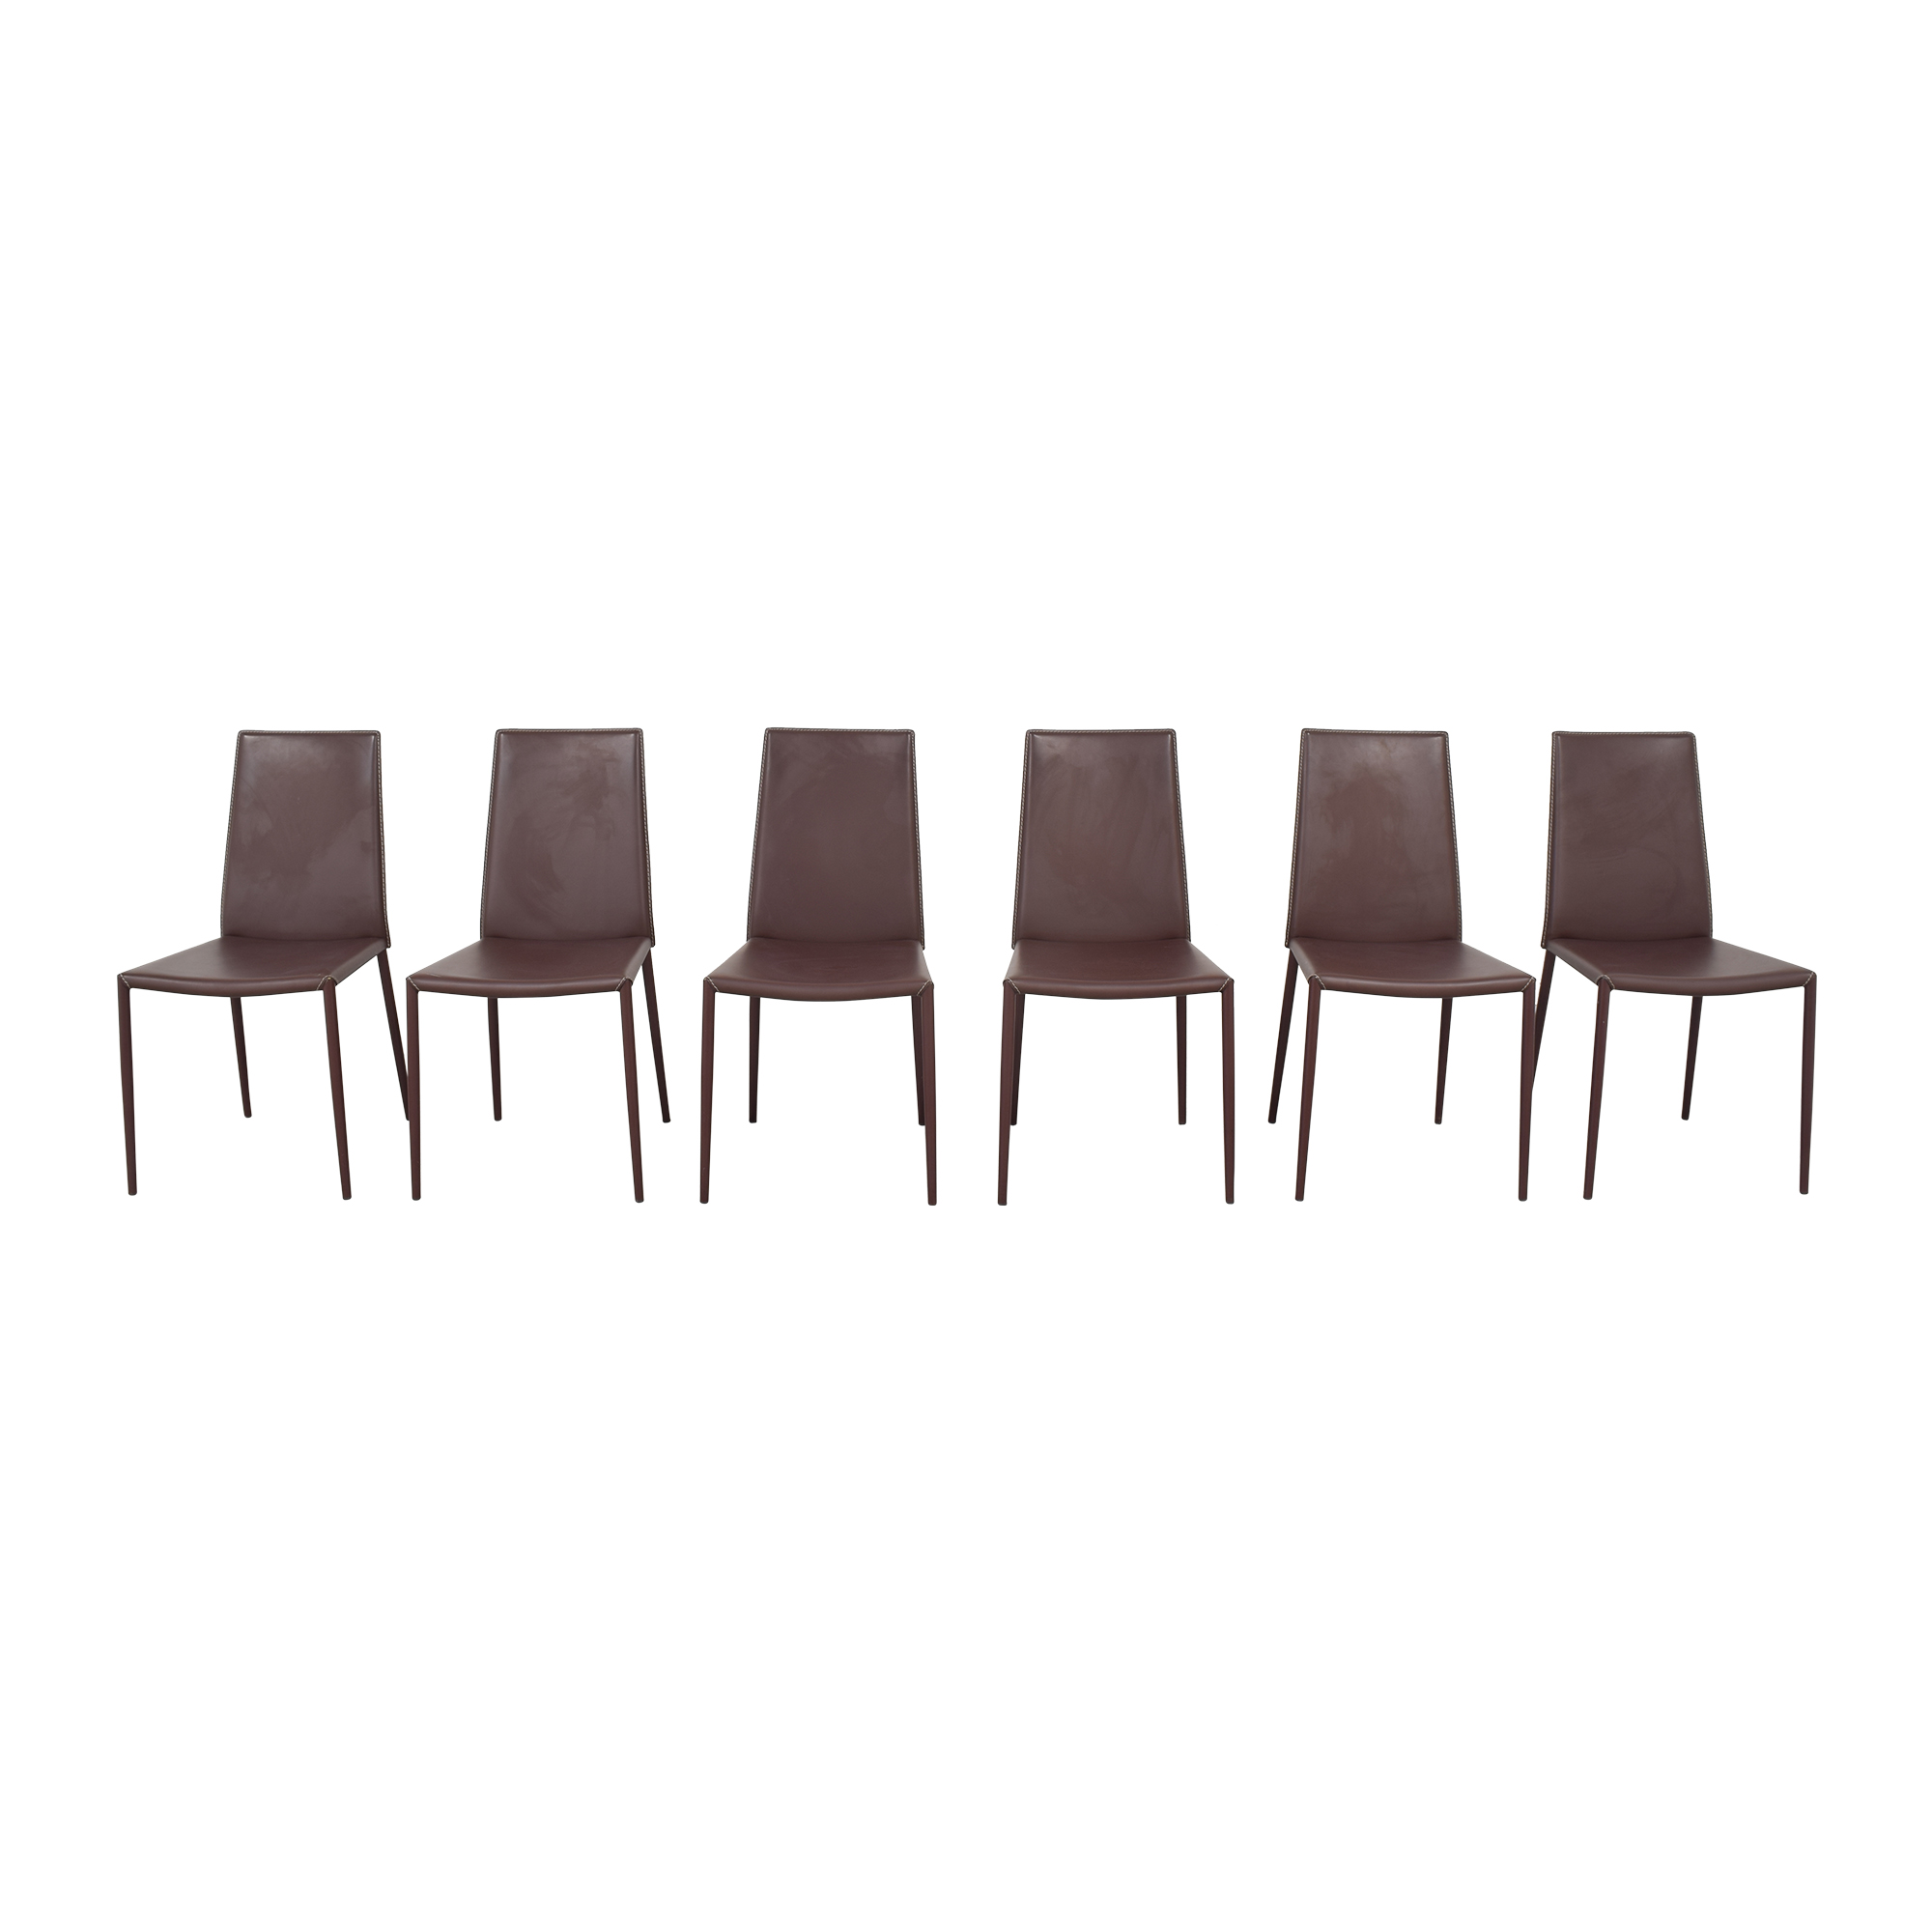 Calligaris Calligaris Boheme by Connubia Dining Chairs for sale